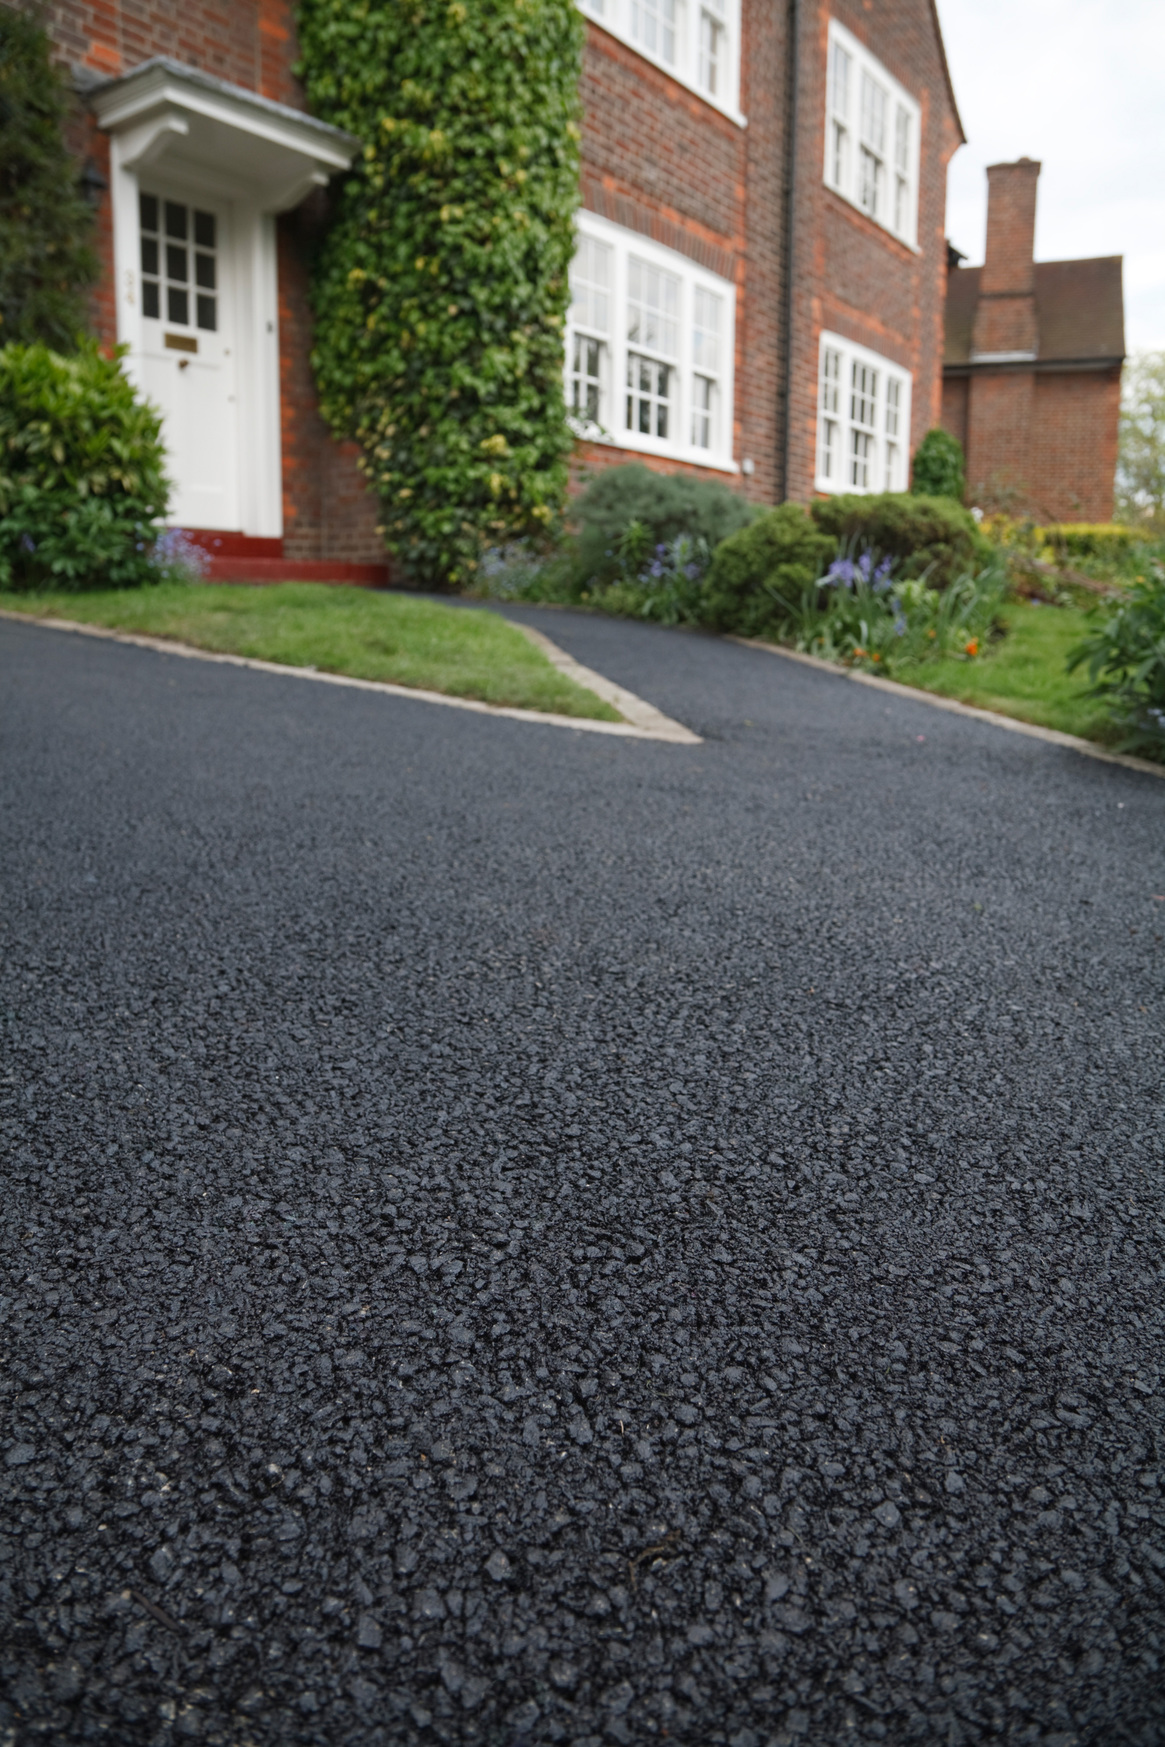 Different Cleaning Methods for Different Driveways